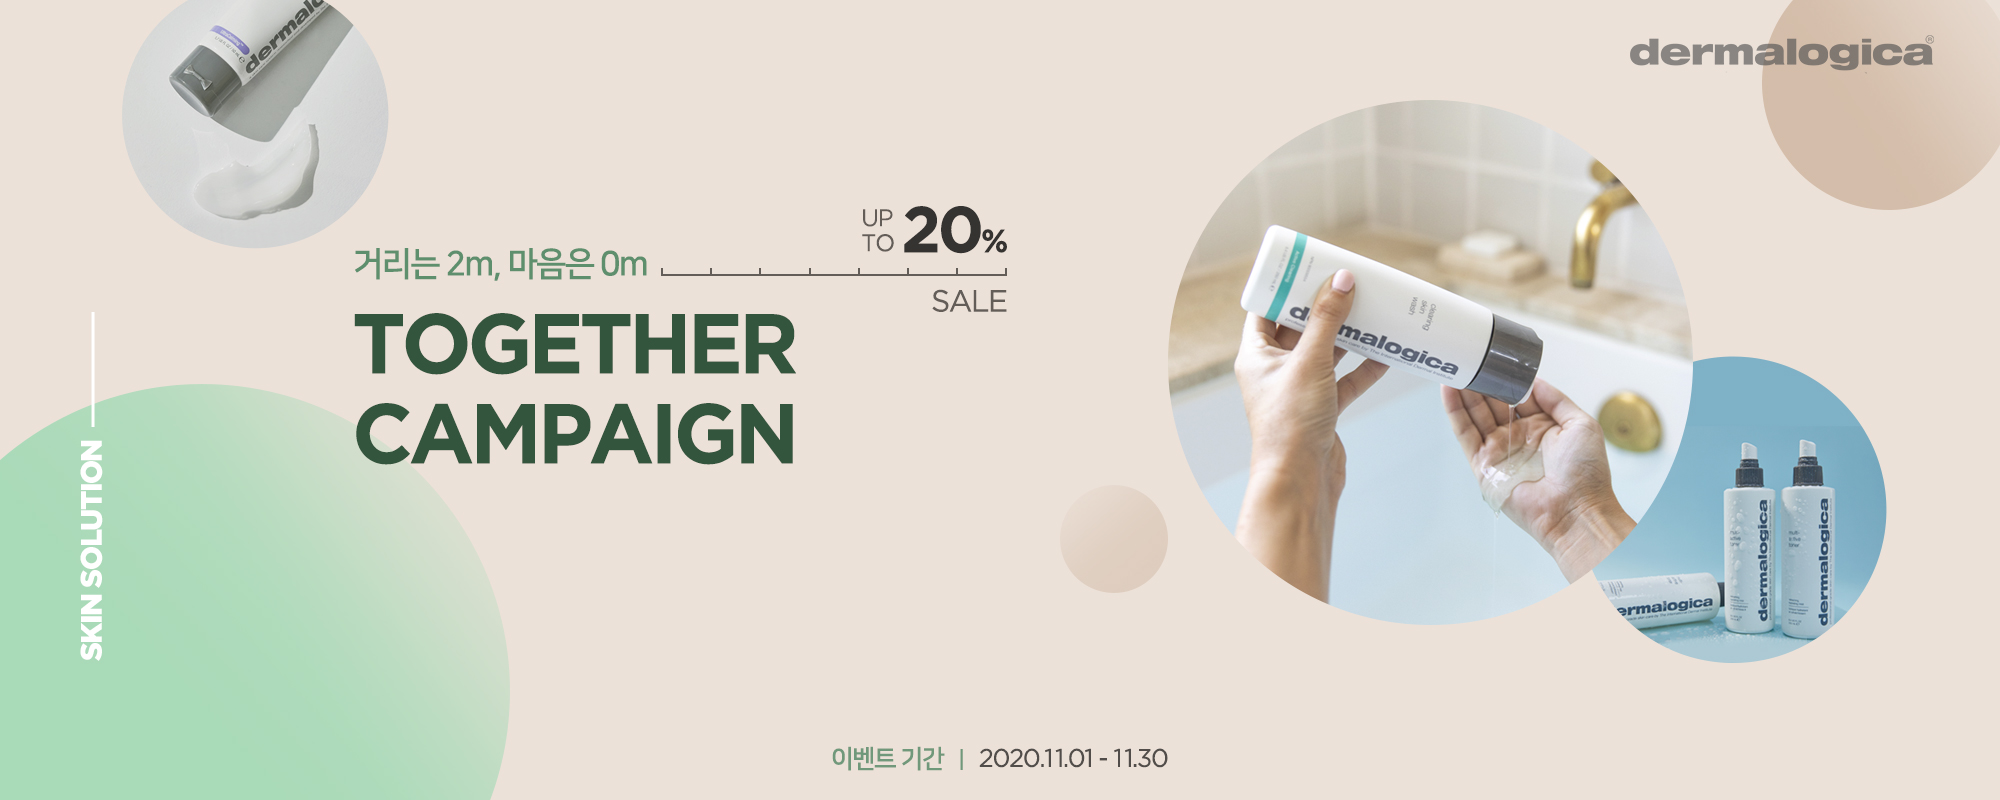 [11-01~11-30] TOGETHER CAMPAIGN